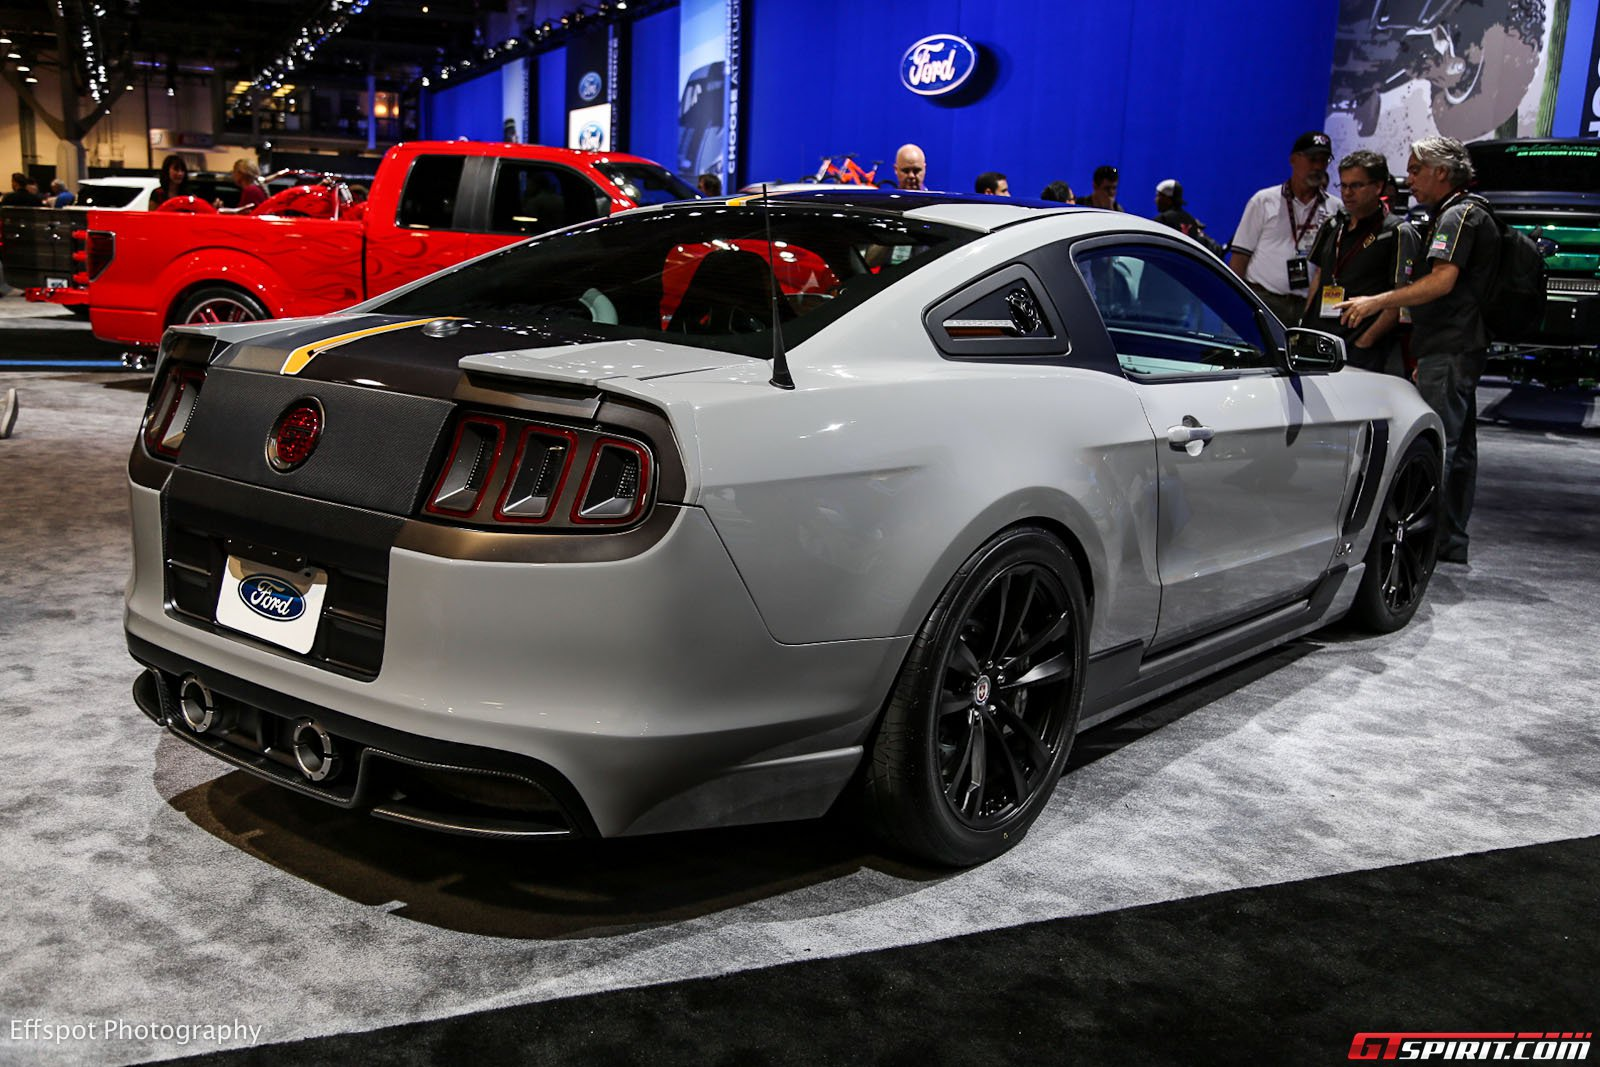 http://www.gtspirit.com/wp-content/gallery/sema-2012-ford-mustang-gt-ringbrothers-edition/p54a5519.jpg